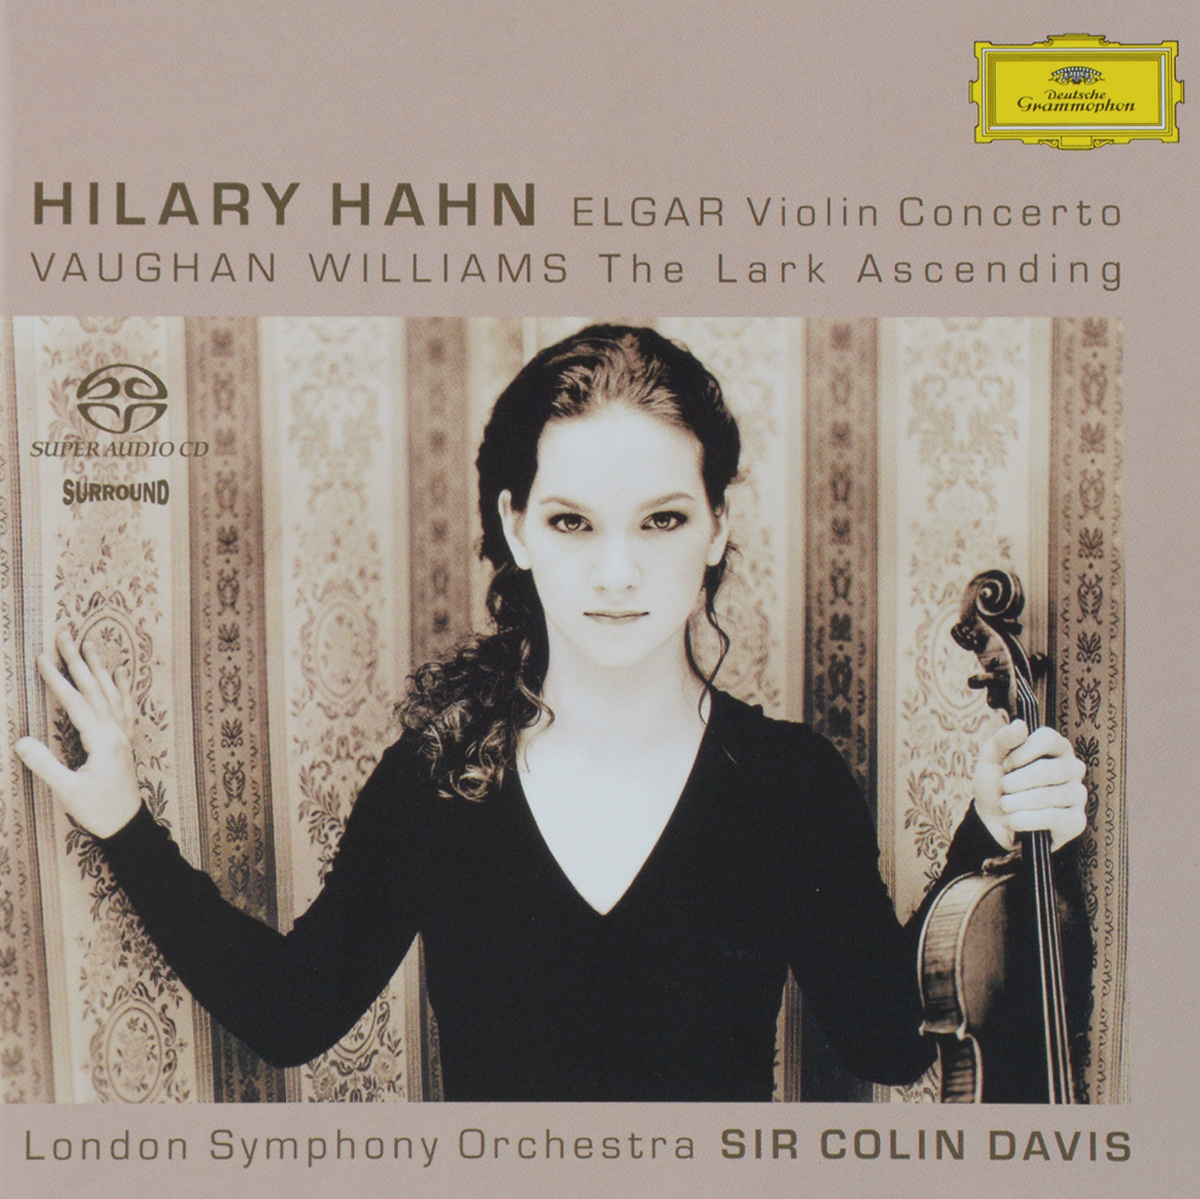 цена на Колин Дэвис,The London Symphony Orchestra Sir Colin Davis. London Symphony Orchestra. Elgar. Violin Concerto / Vaughan Williams. The Lark Ascending (SACD)